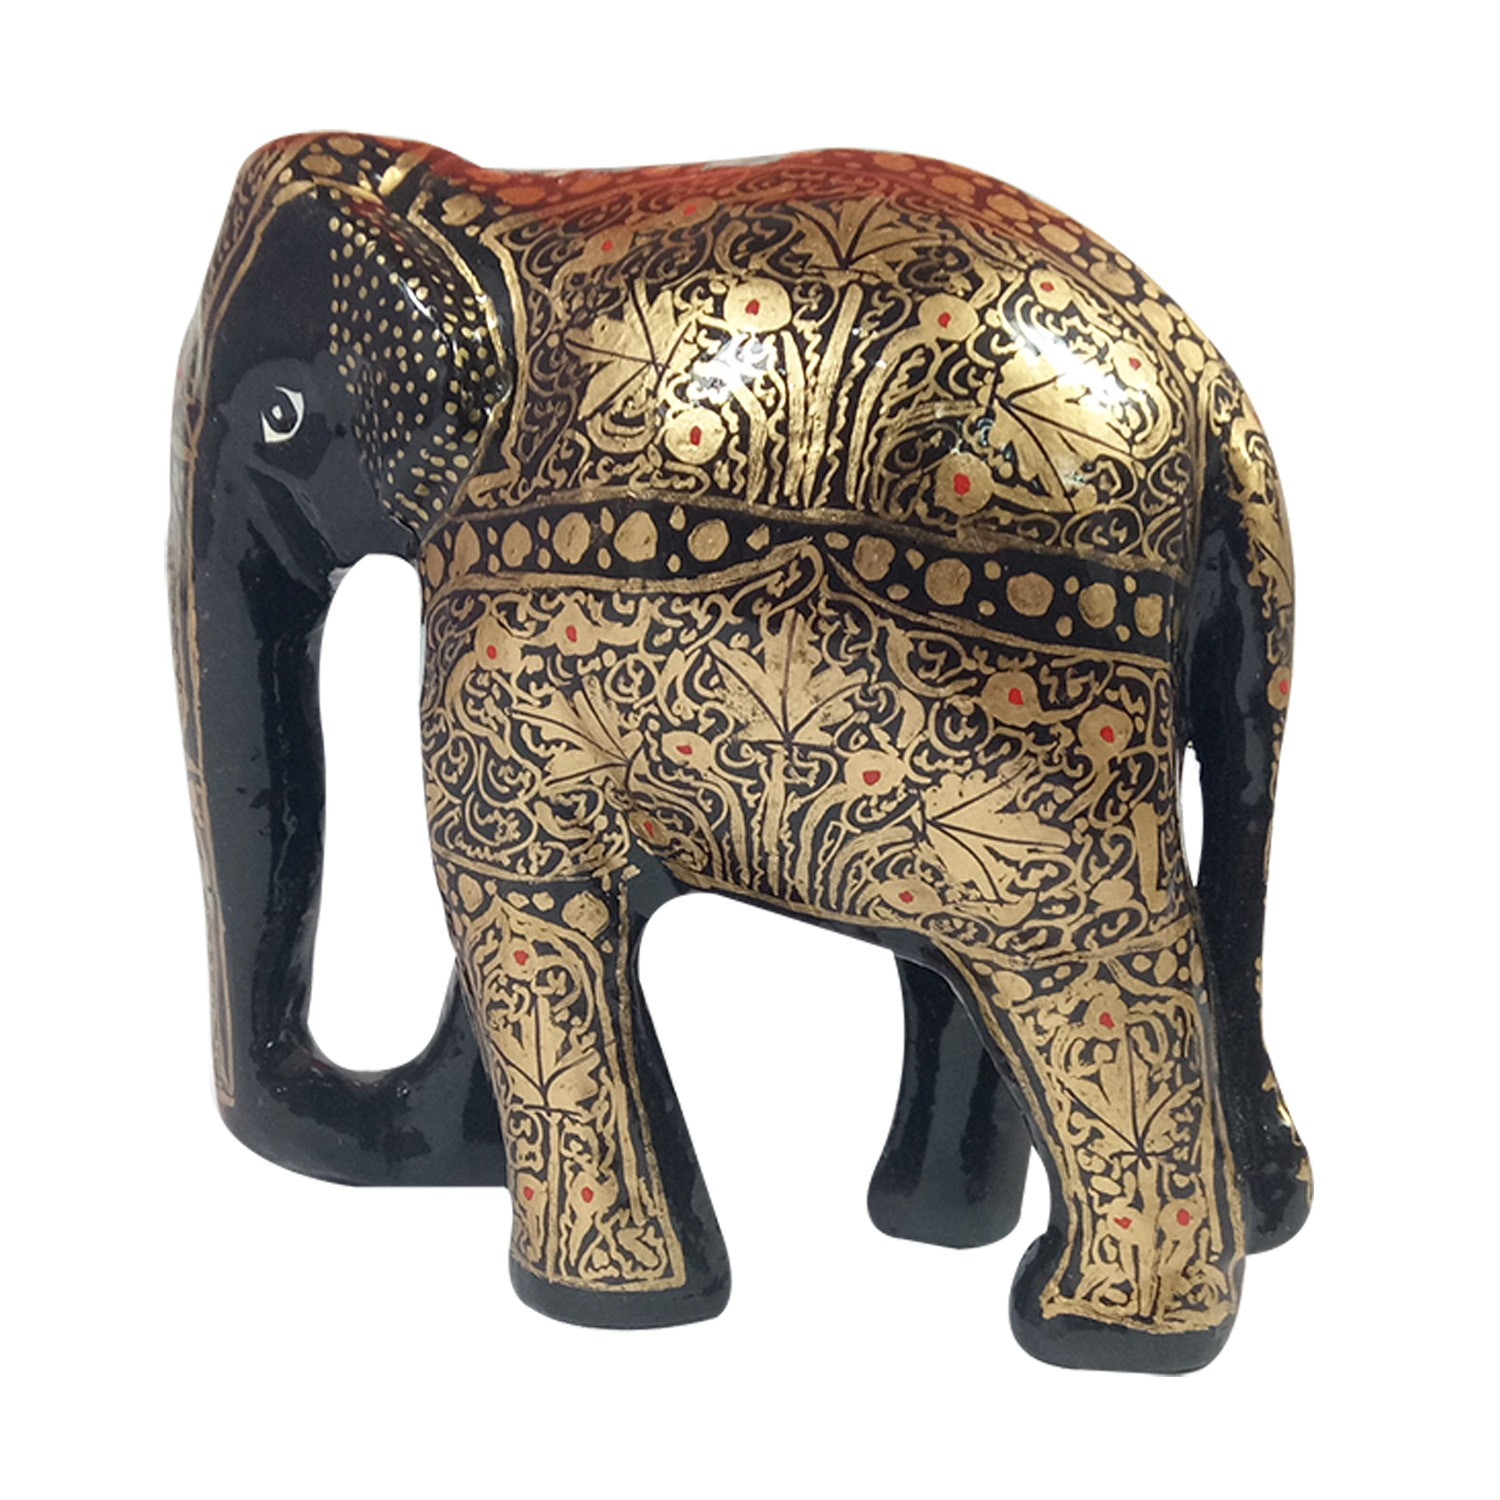 Handmade exclusive paper mache Black Elephant By Rural Artisan.